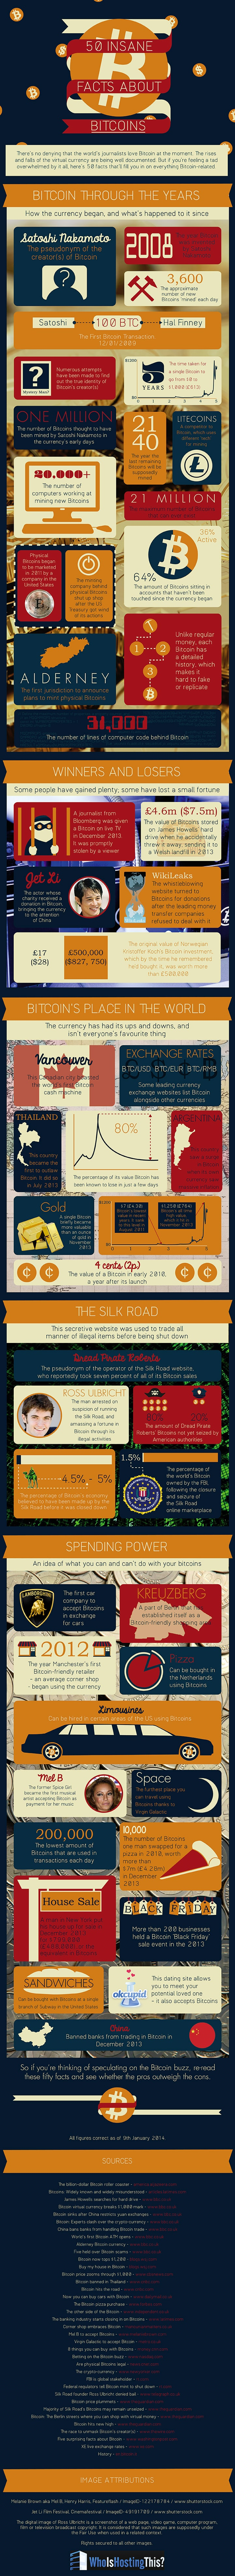 50 Insane Bitcoin Facts Infographic